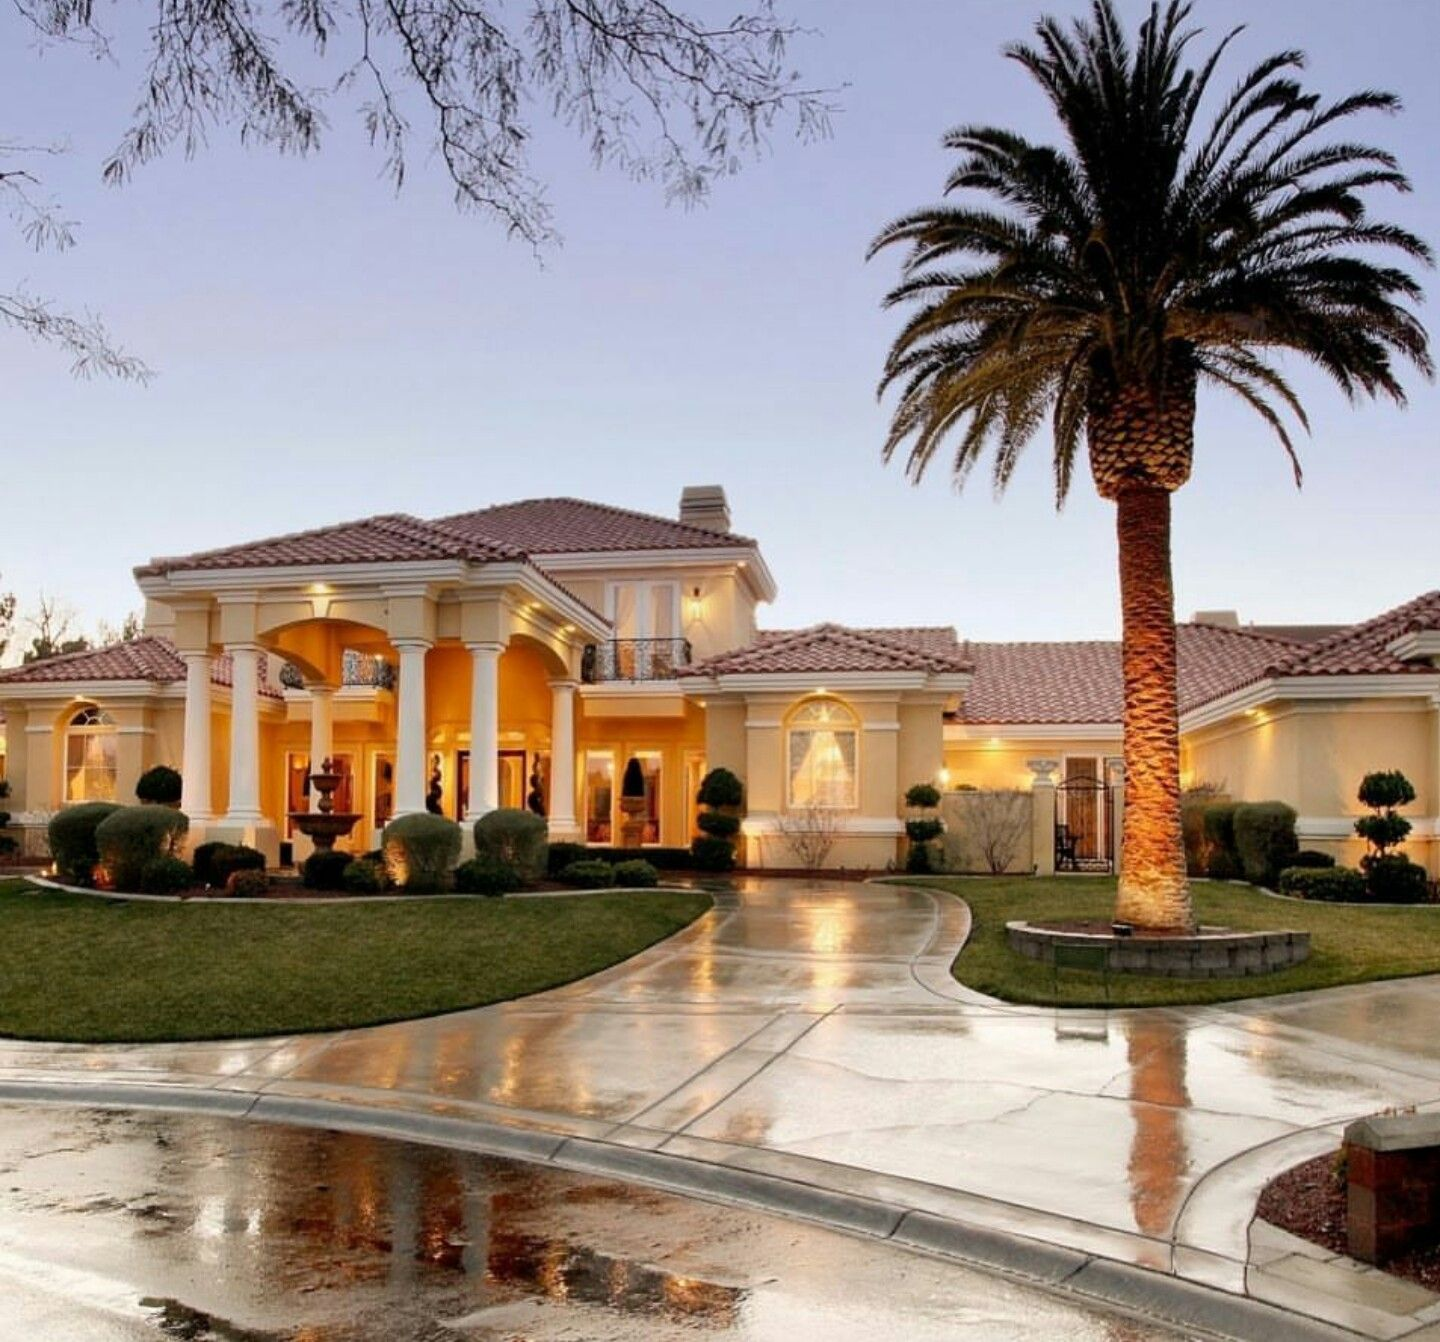 Luxury Florida mansion #millionairelifestyle #blacklist